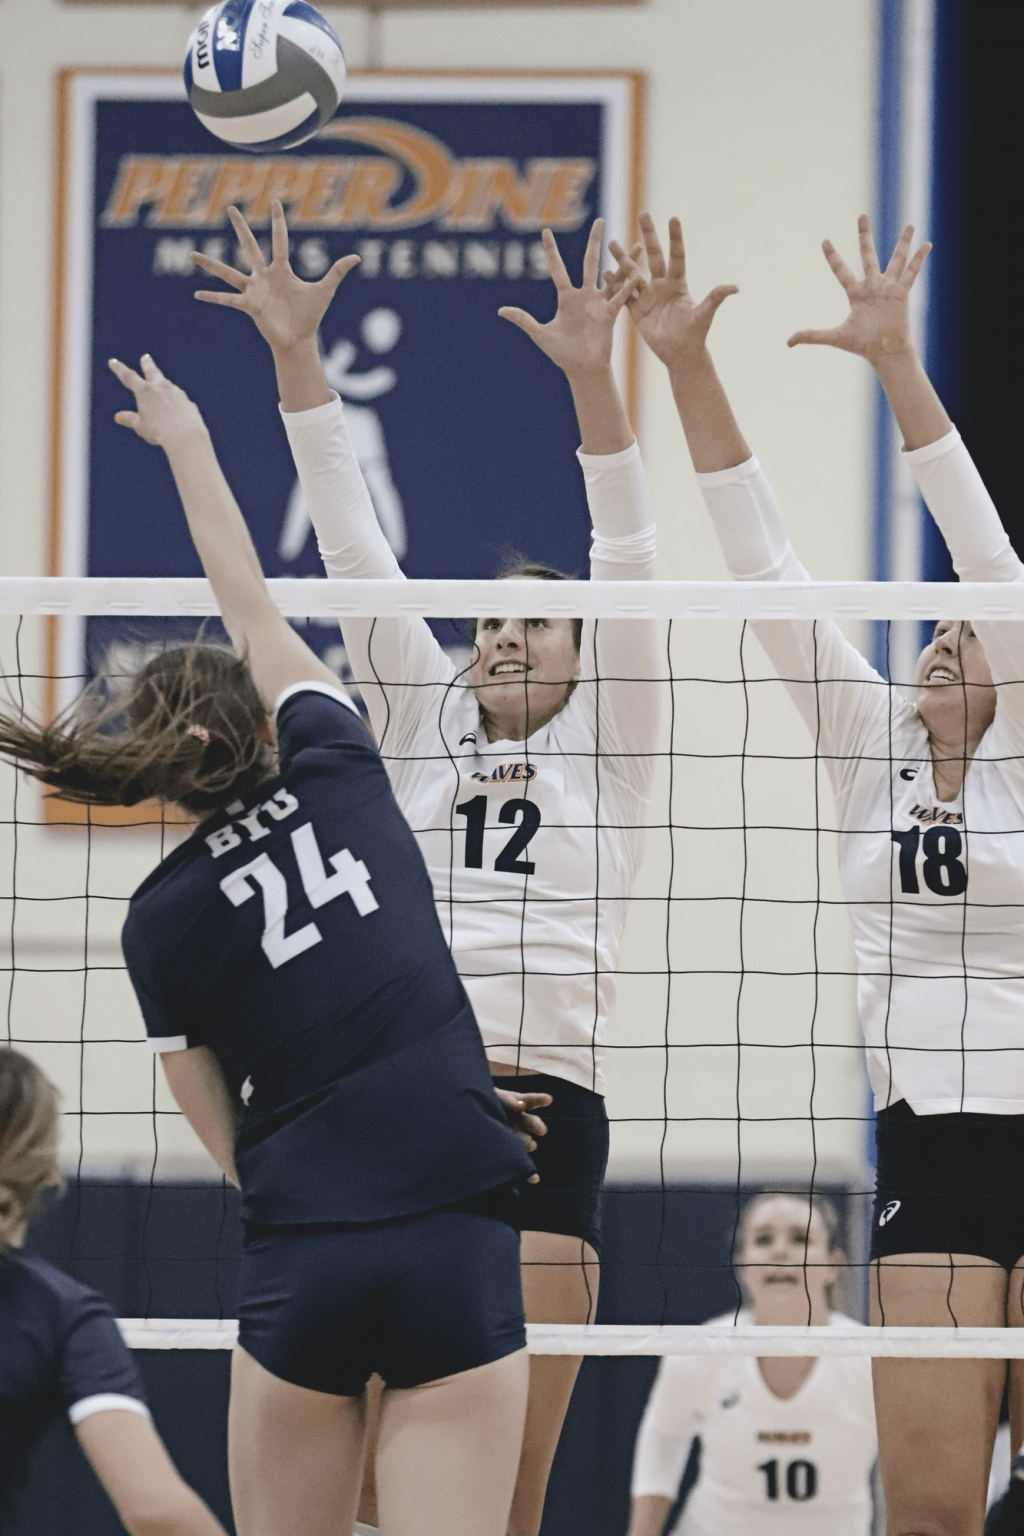 Freshman middle blocker Meg Brown (No. 12) and junior outside hitter Rachel Ahrens (No. 18) elevate for a block attempt Feb. 23. Both Waves were named to the 2021 All-WCC First Team.